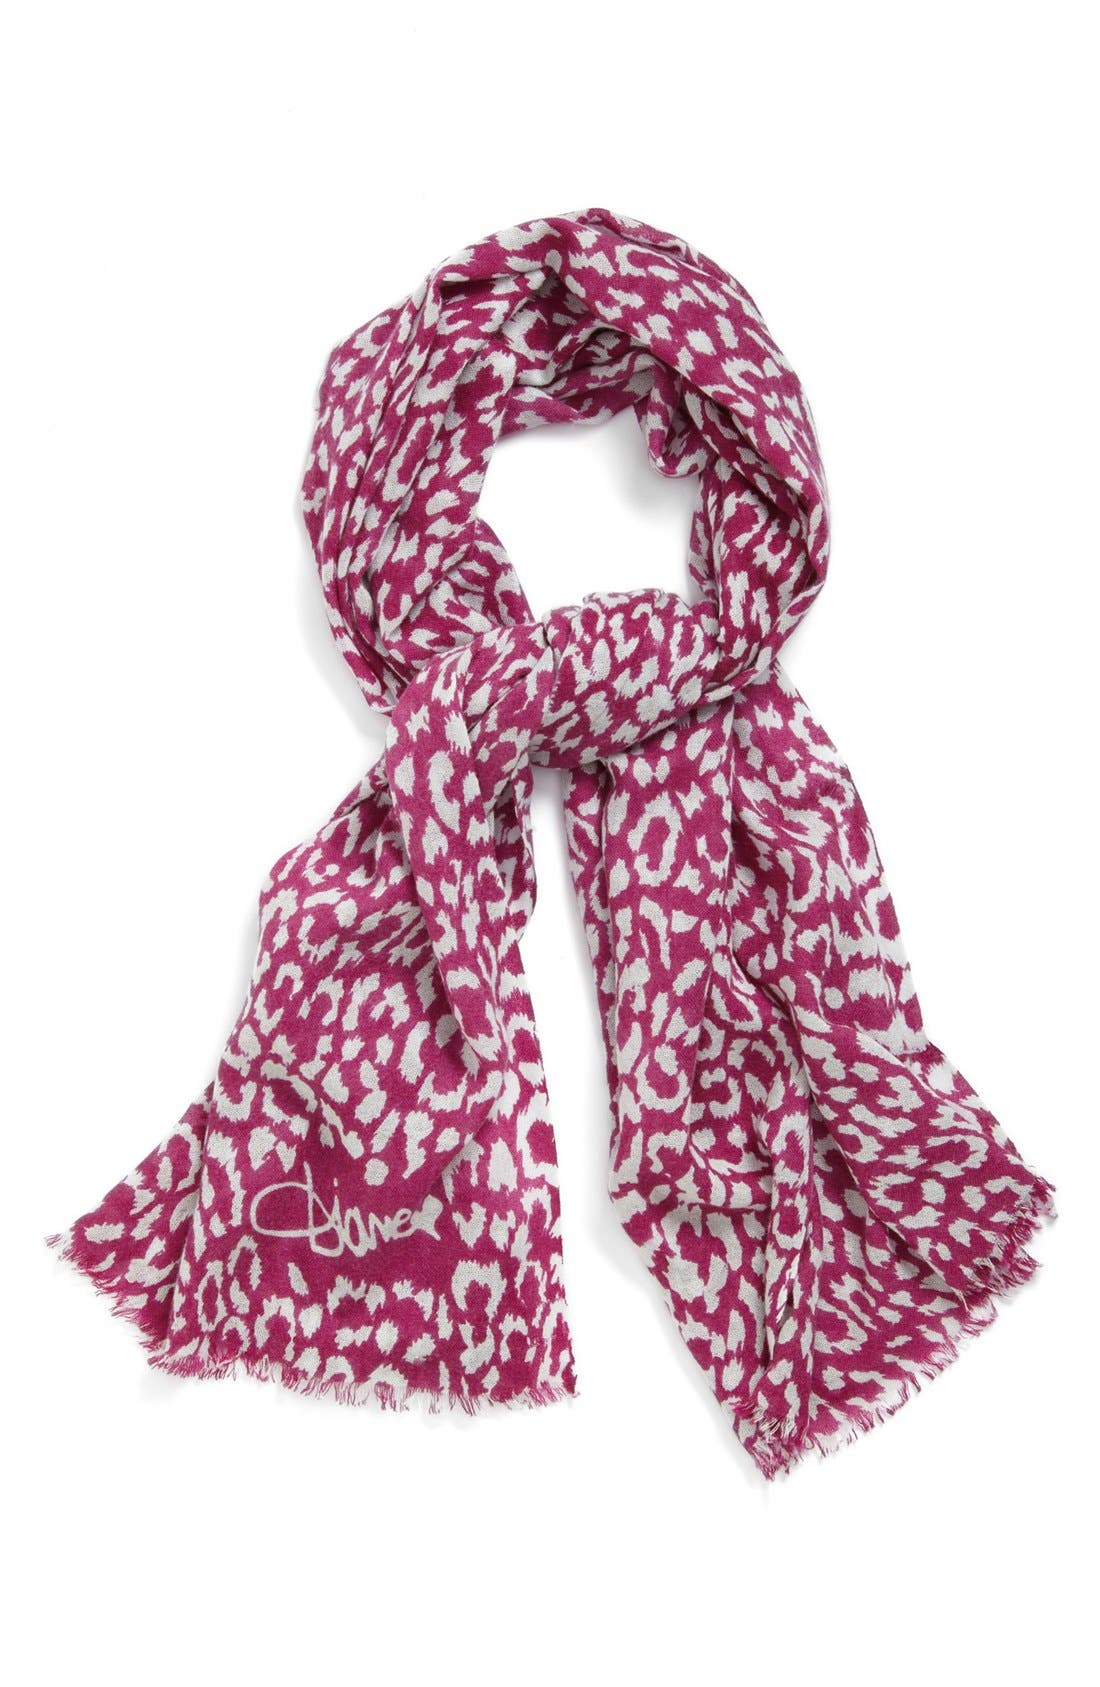 'Kenley' Cashmere Scarf,                         Main,                         color, Spotted Cat Luxe Pink